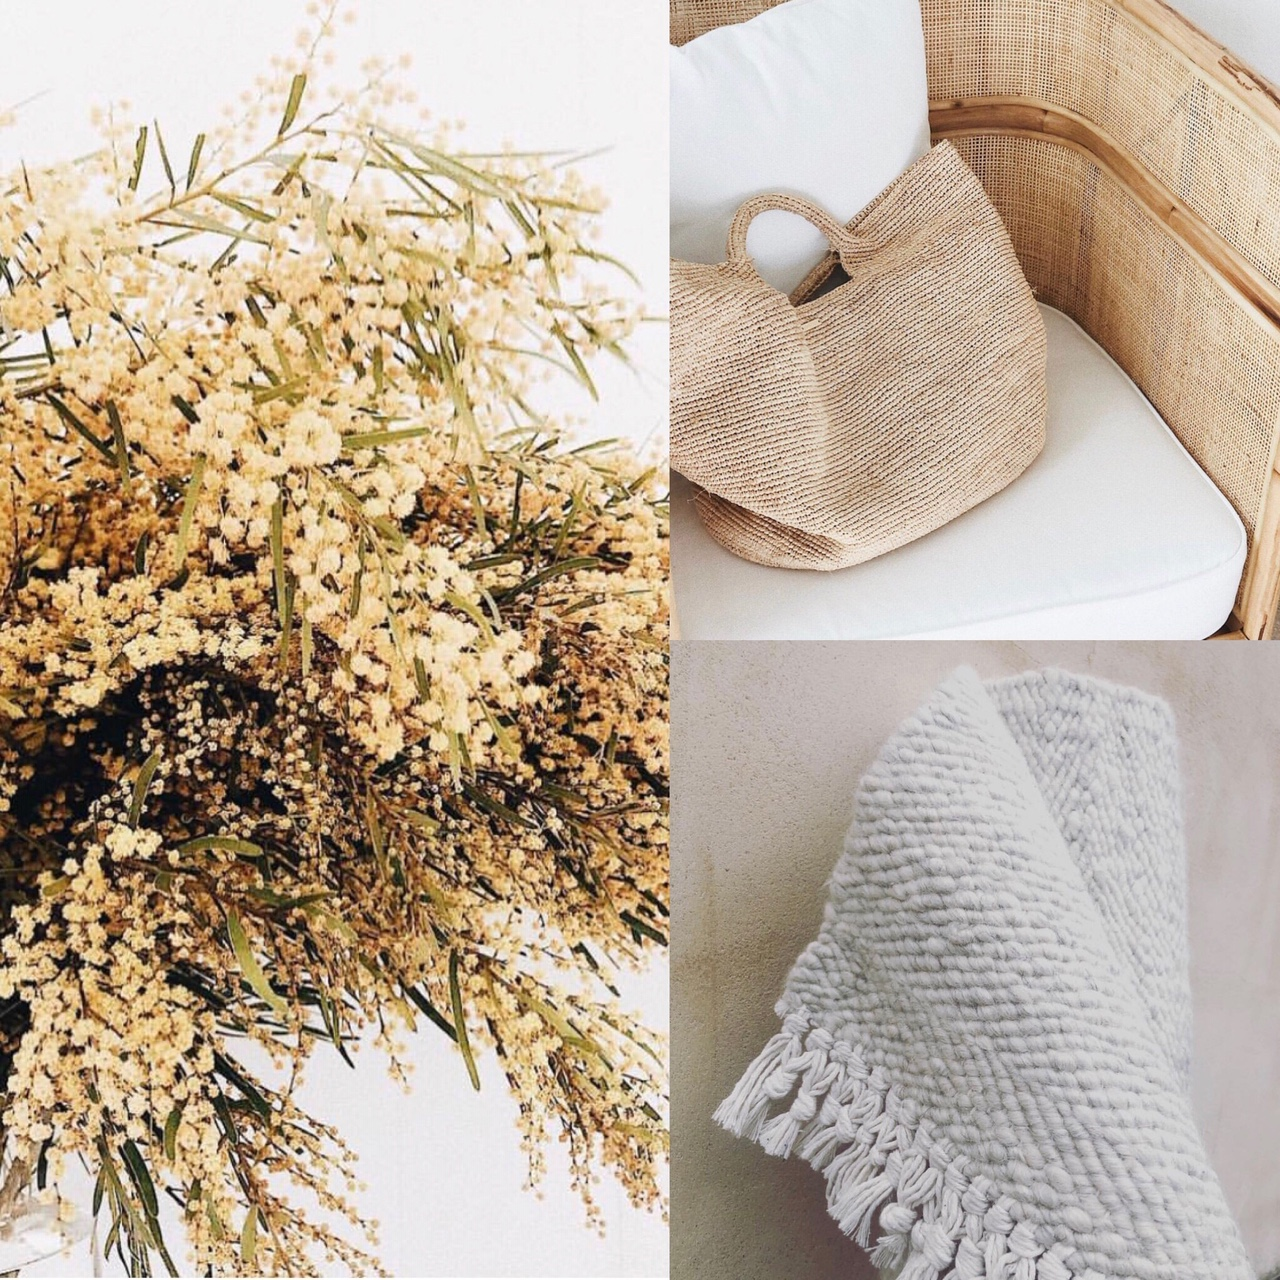 Summer textures and warm tones with Coral & Hive white karakul + Sunday Lane photography.